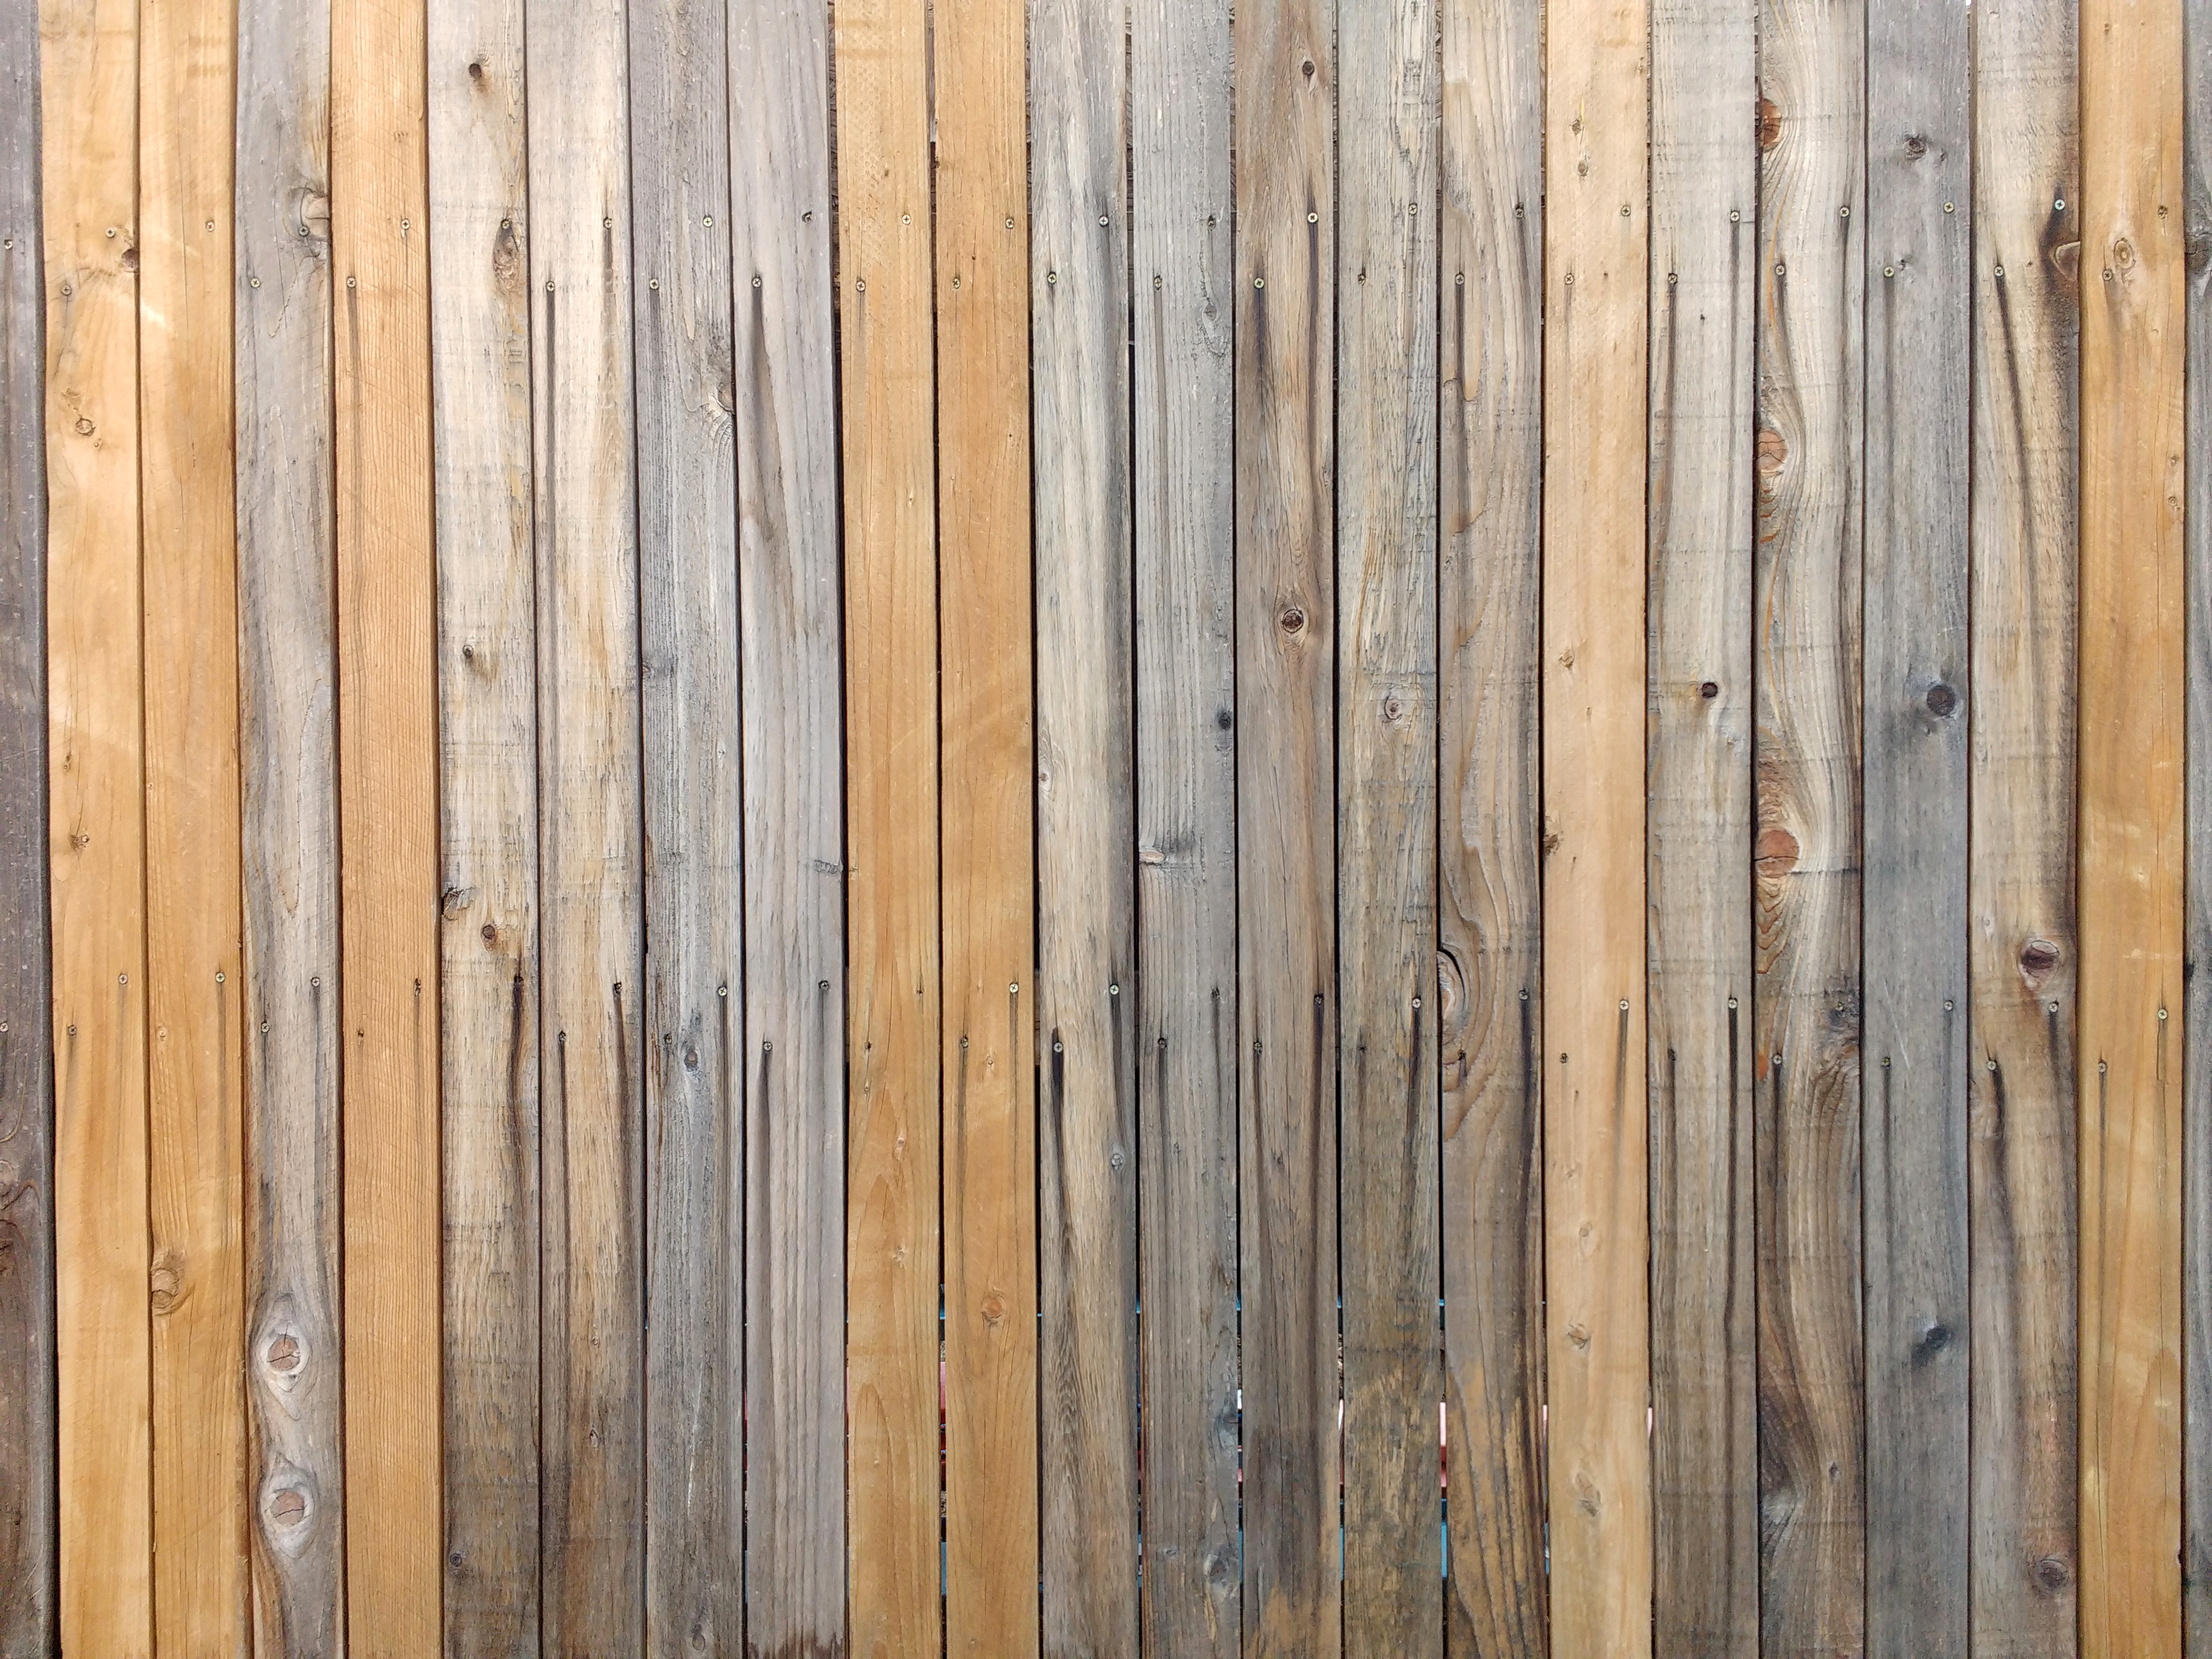 Horizontal Wood Fence Texture weathered wood fence texture old weathered wood fence barn fence